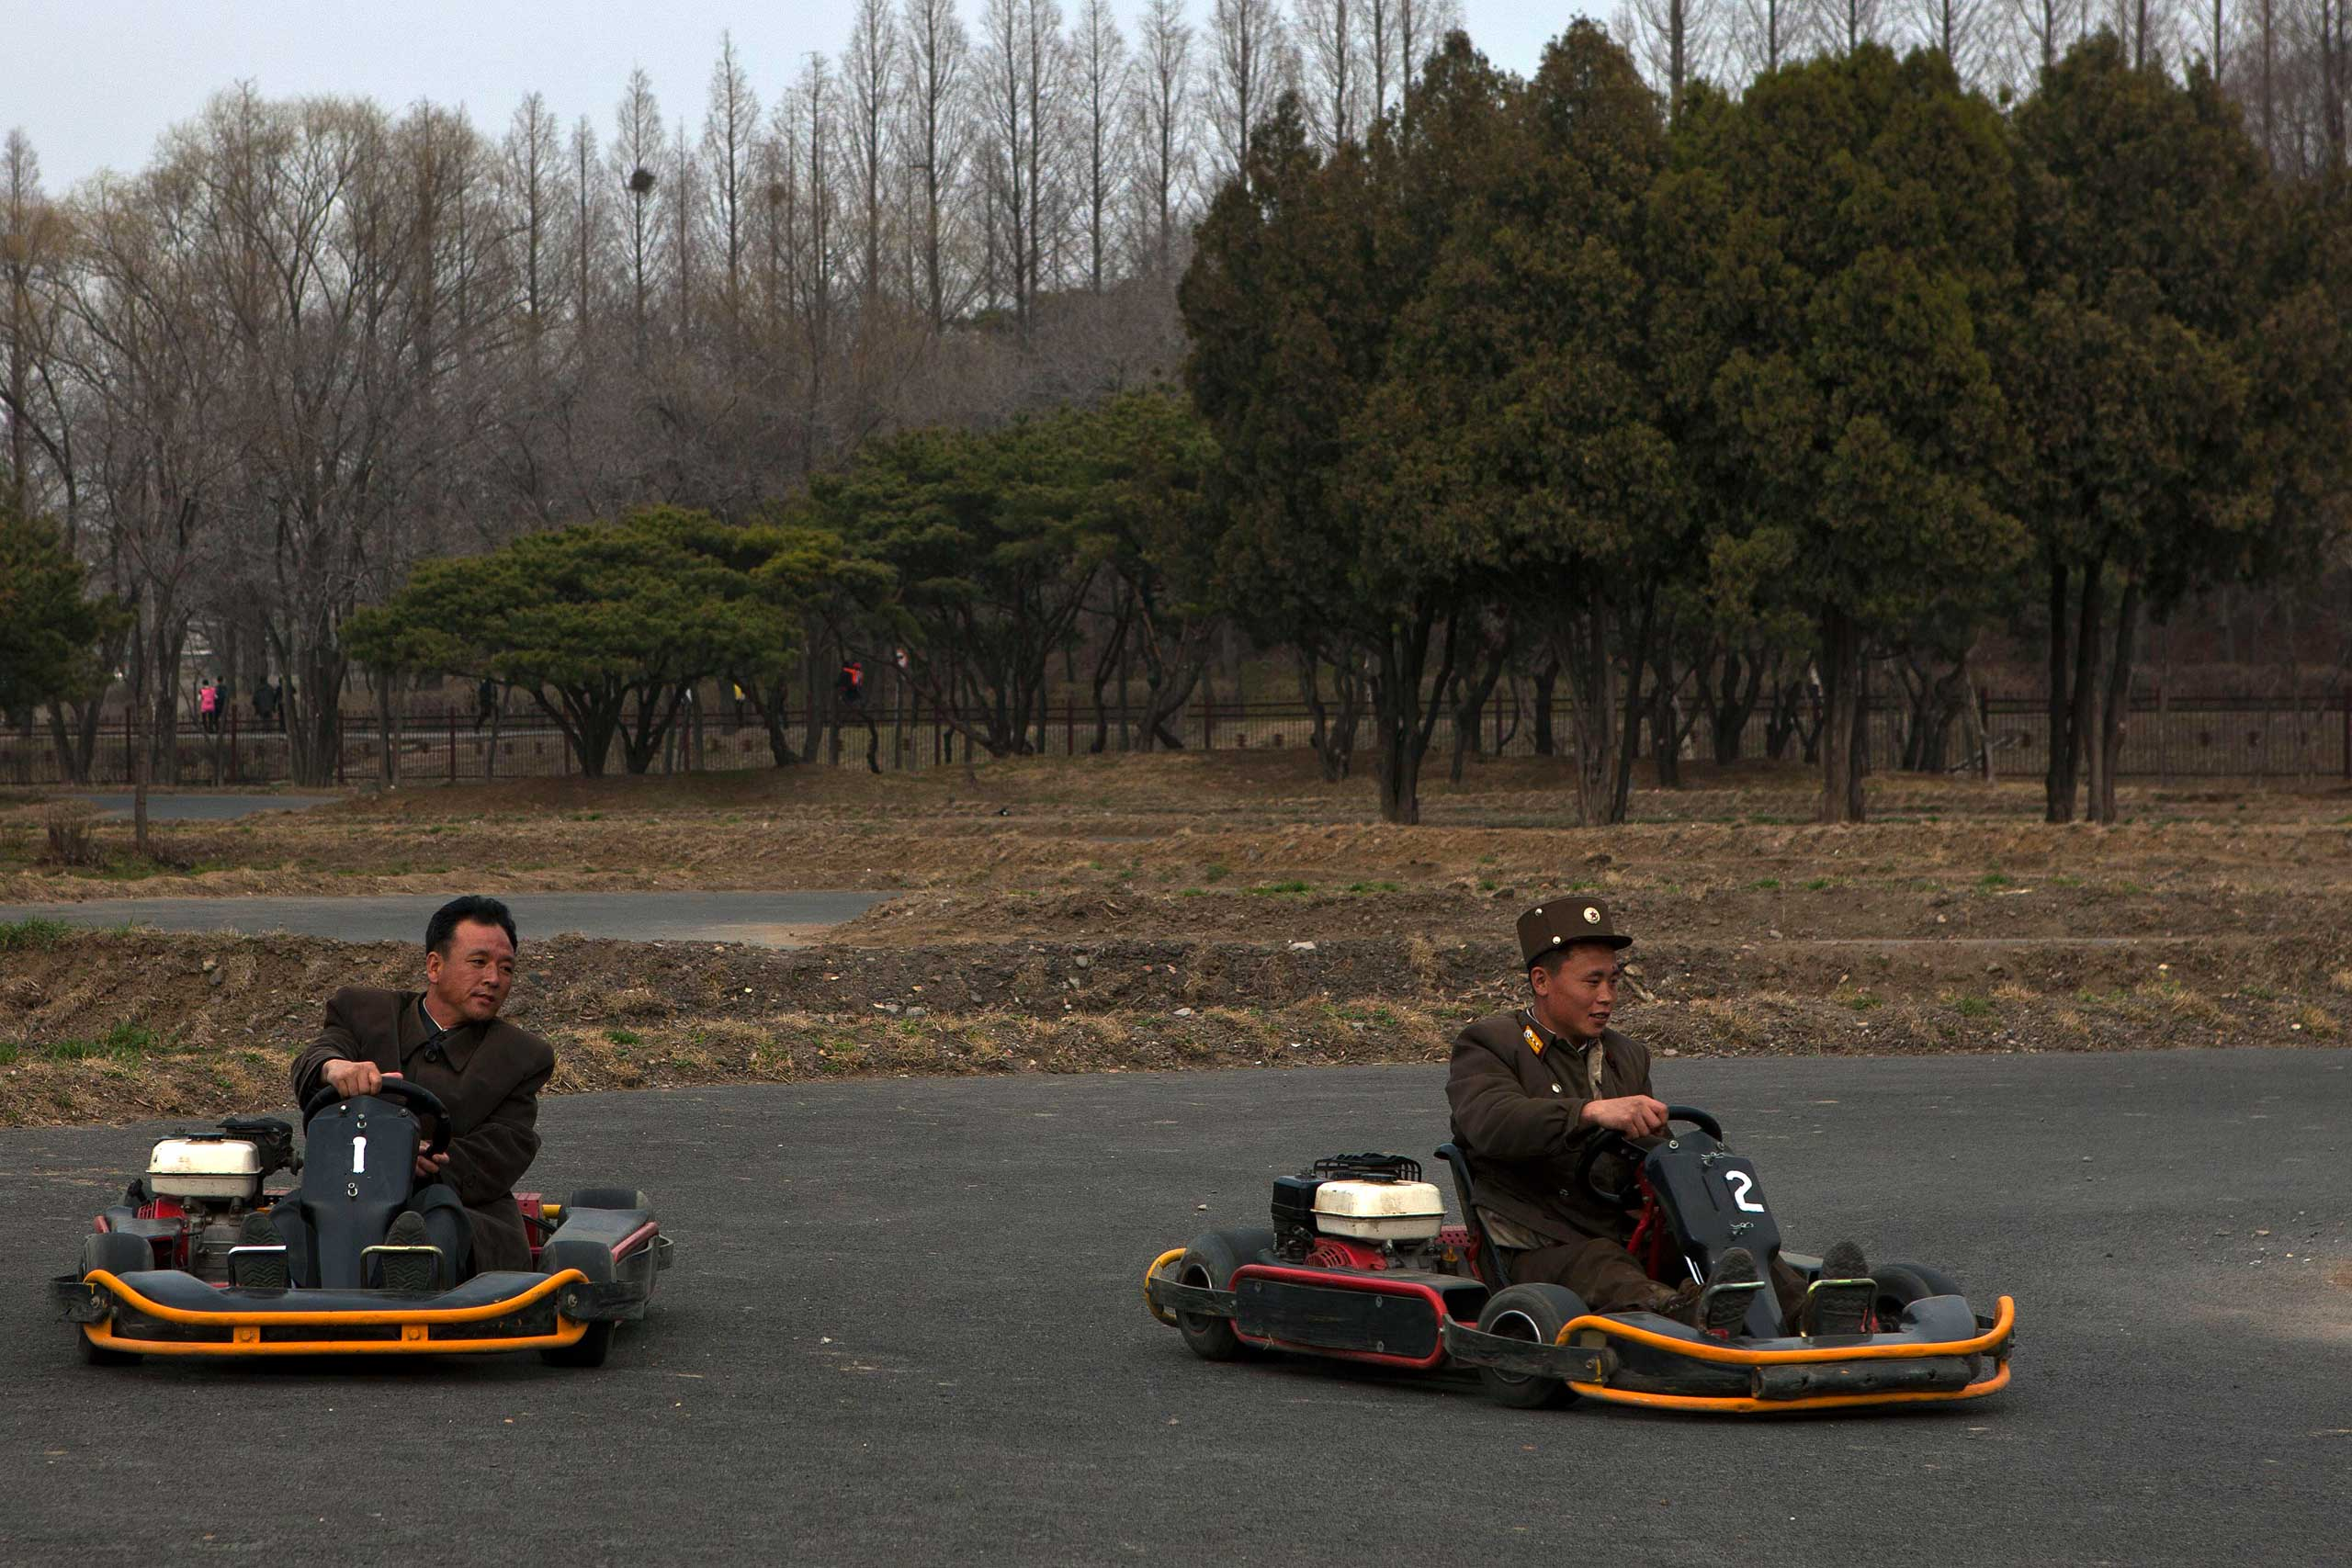 April 16, 2013. A North Korean soldier races another man on a go cart track at the Fun Fair in Pyongyang, North Korea.